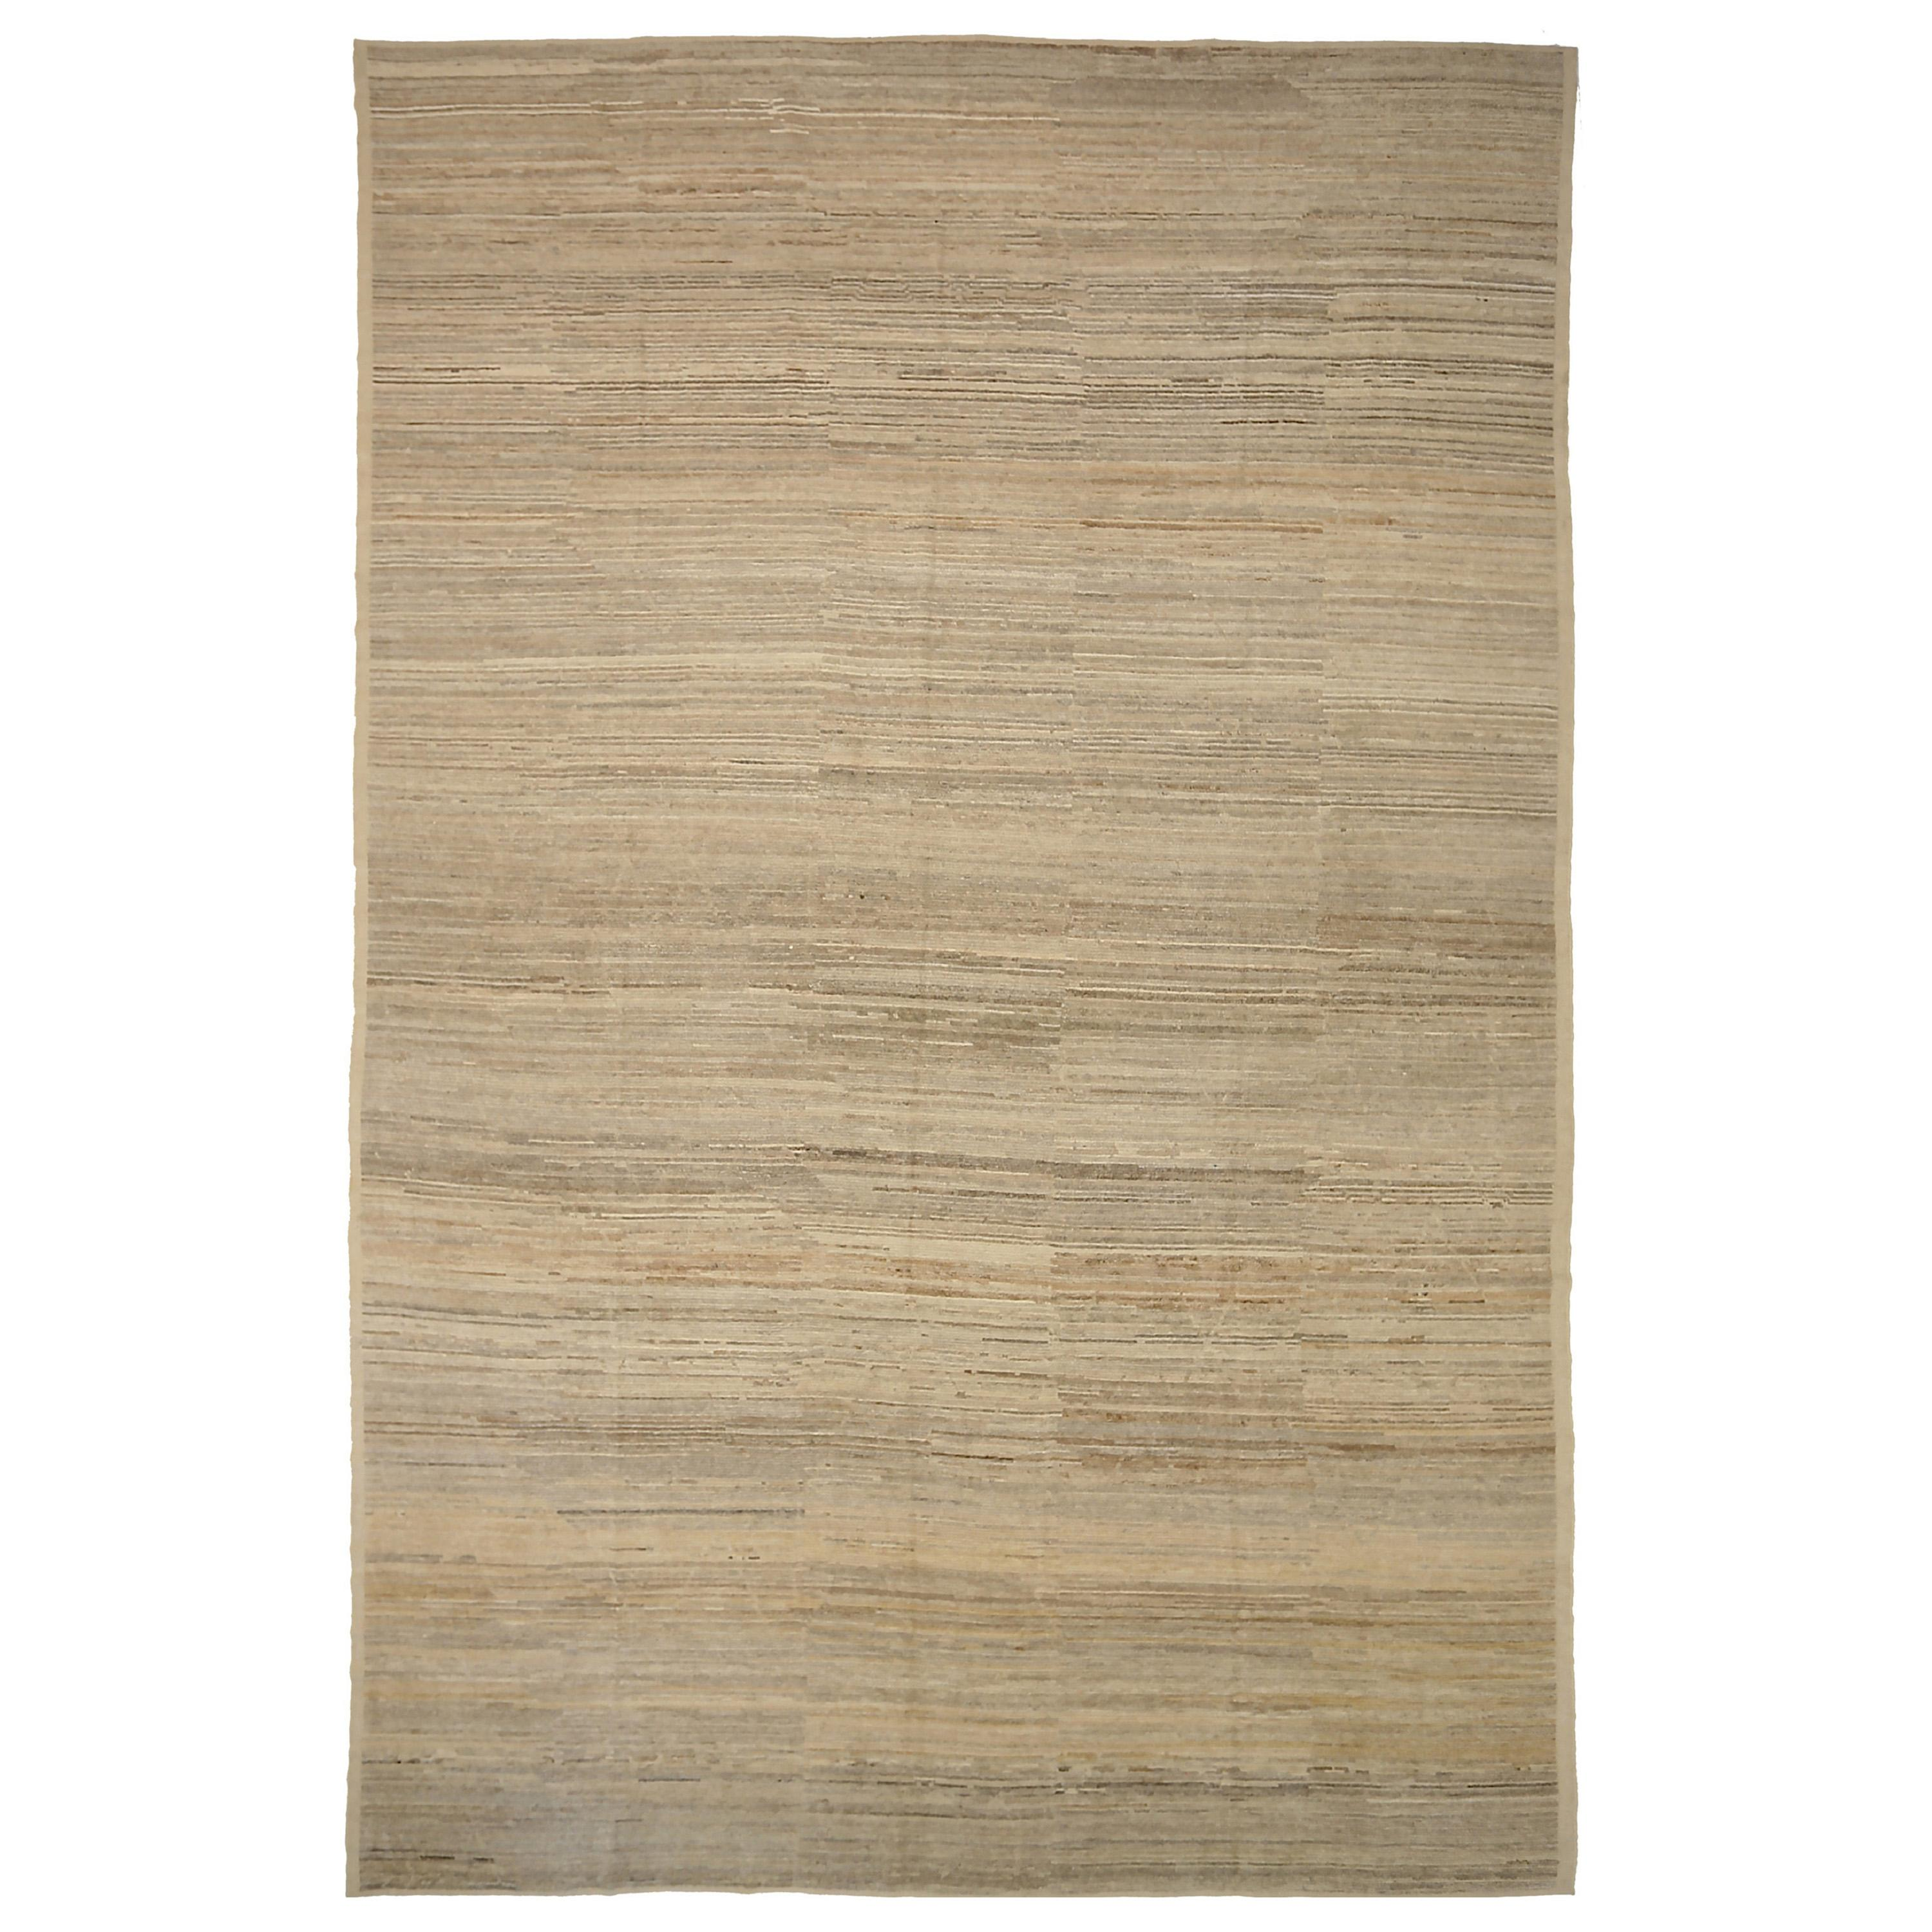 Nazmiyal Collection Coral Beige Modern Distressed Rug. 12 ft 4 in x 18 ft 3 in